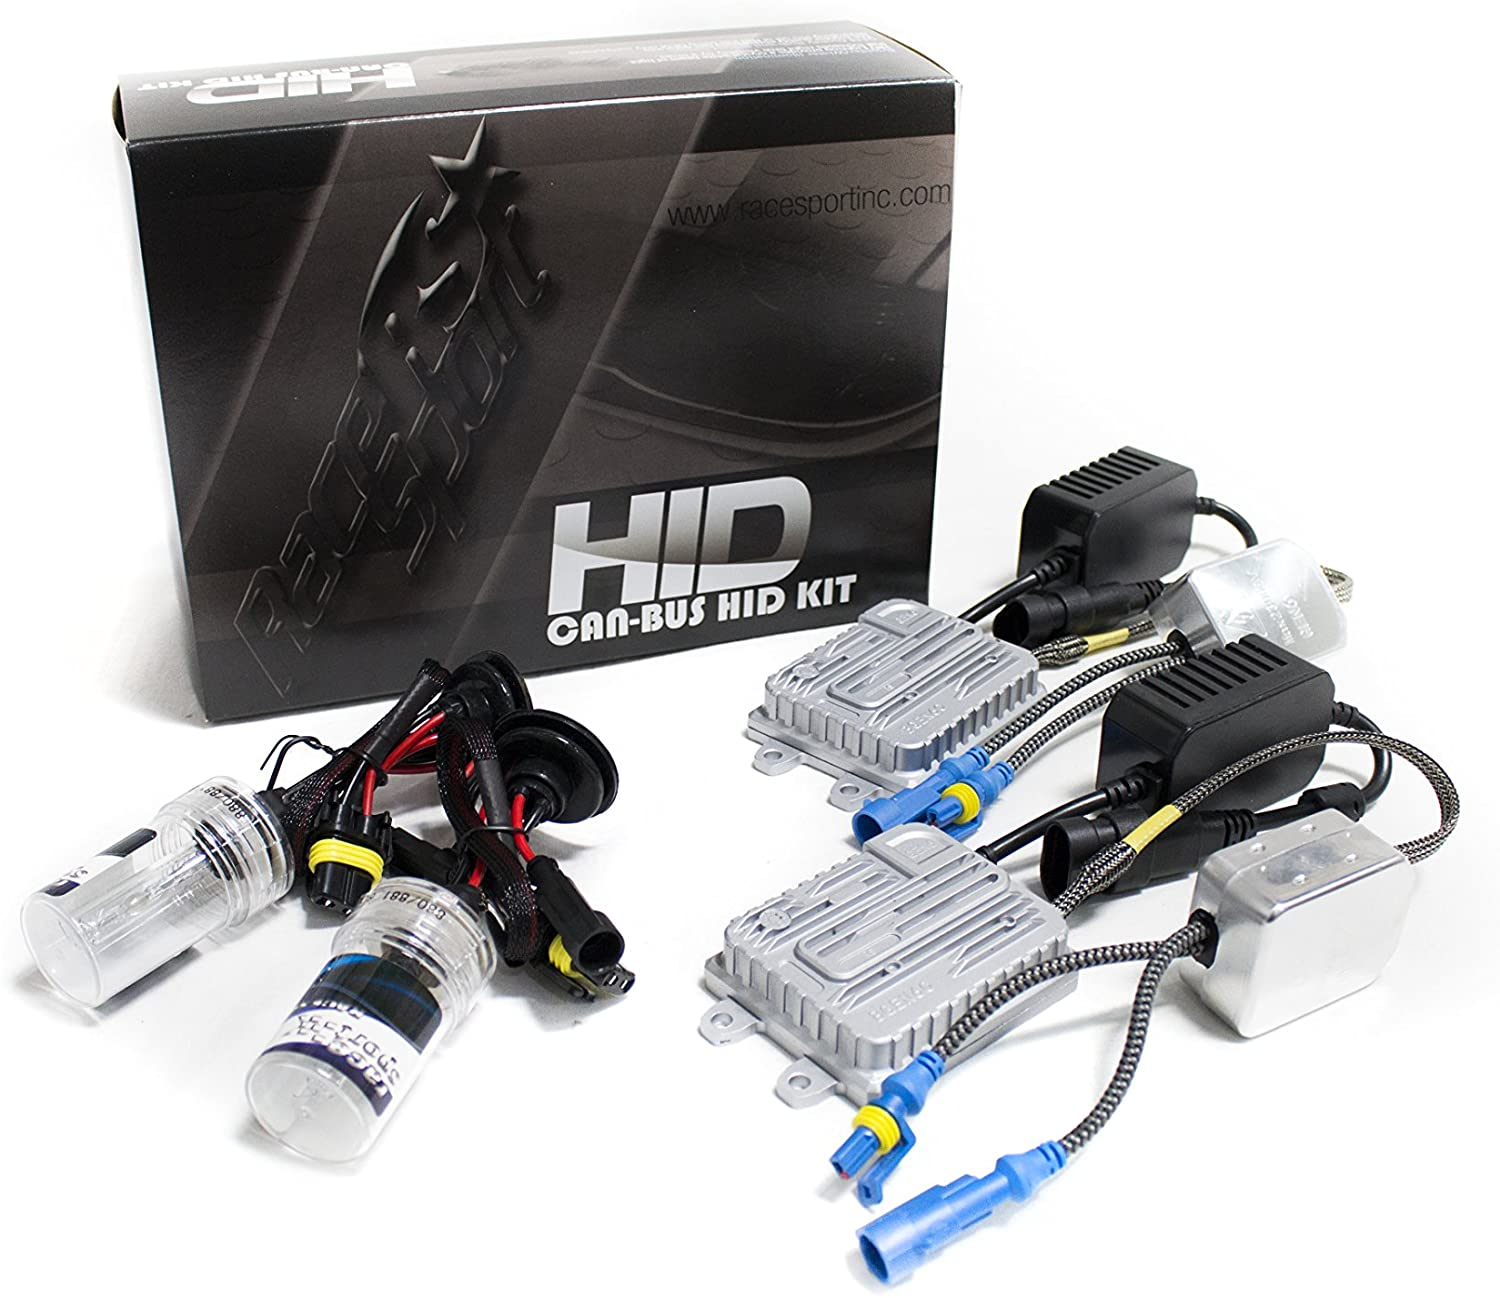 Rs 9005 Gen6 35W Hid Canbus Slim Kit